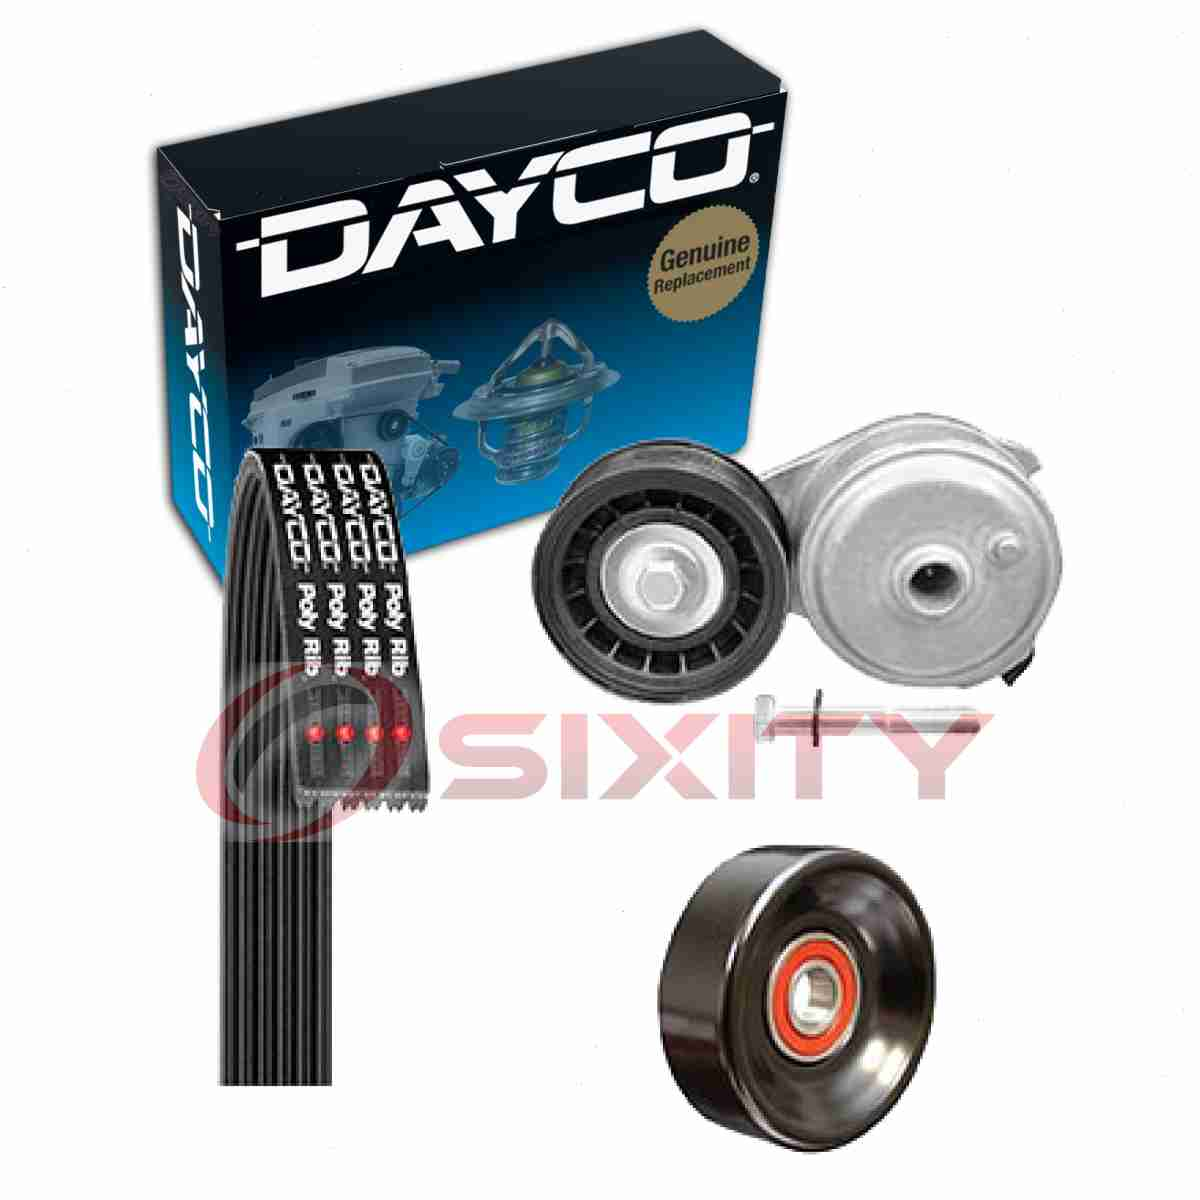 small resolution of details about dayco serpentine belt drive component kit for 1996 2000 chevrolet tahoe 5 7l vv